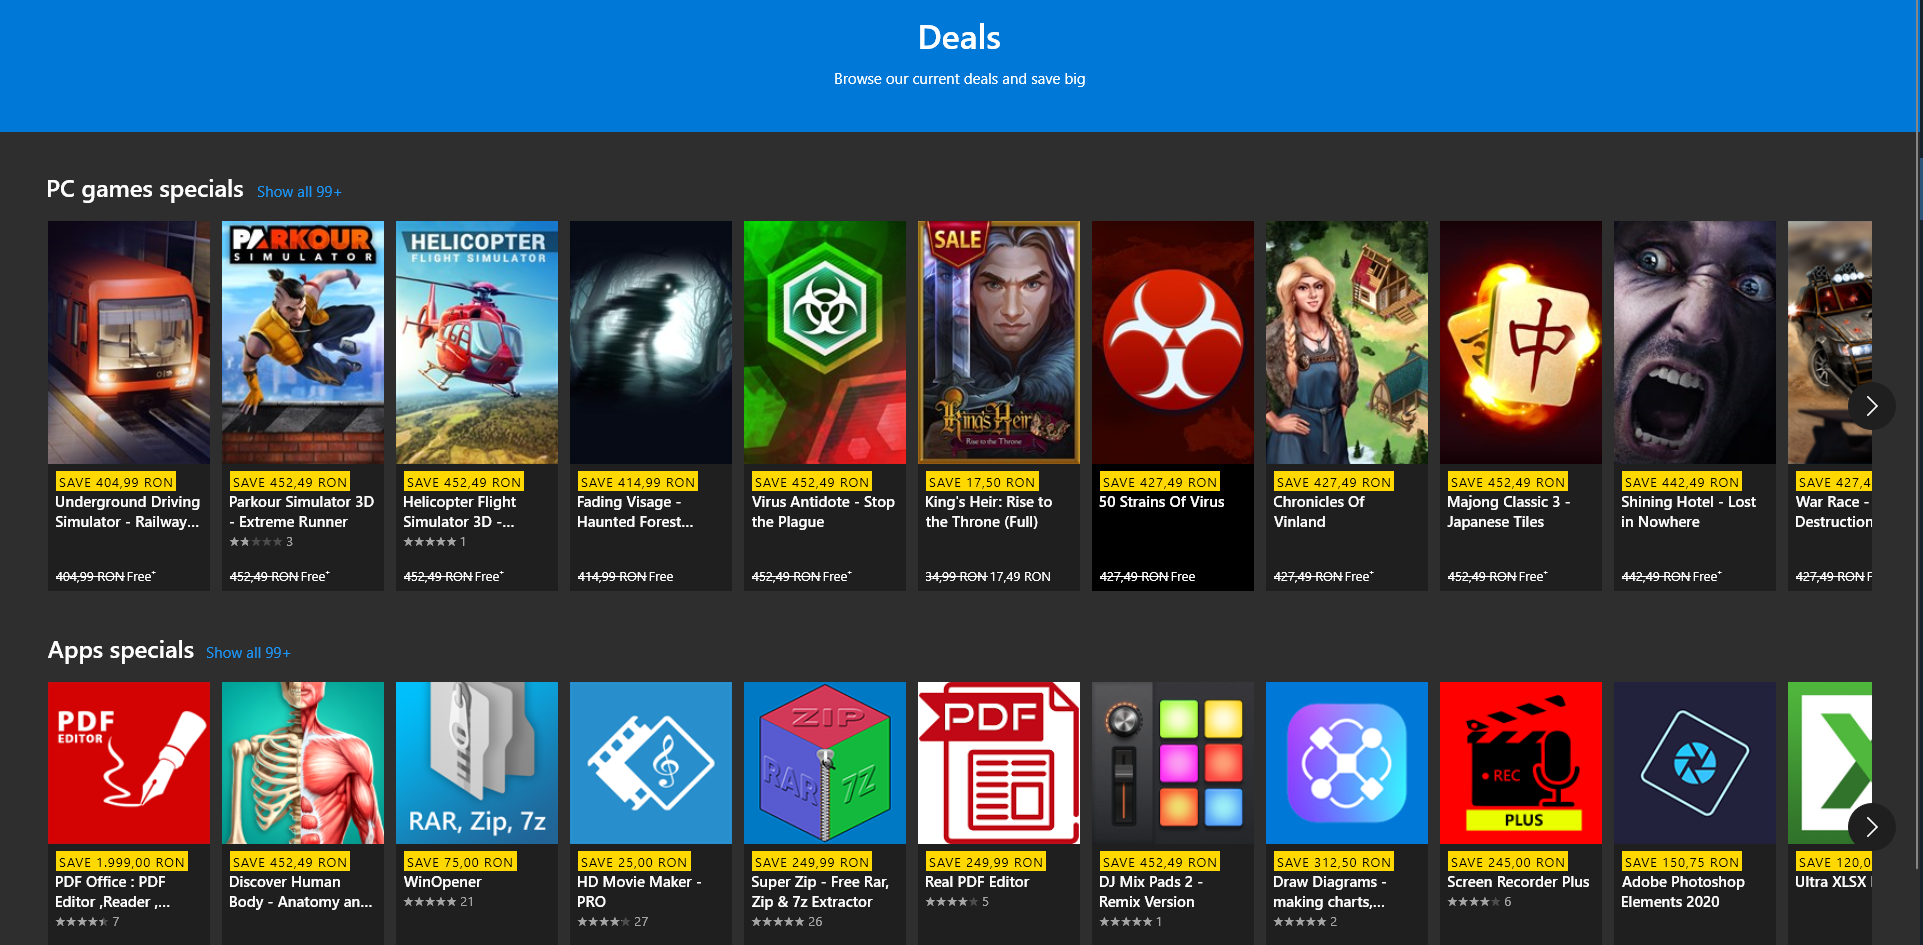 MEGA DEALS 100 FREE apps for Windows 10 on MICROSOFT STORE